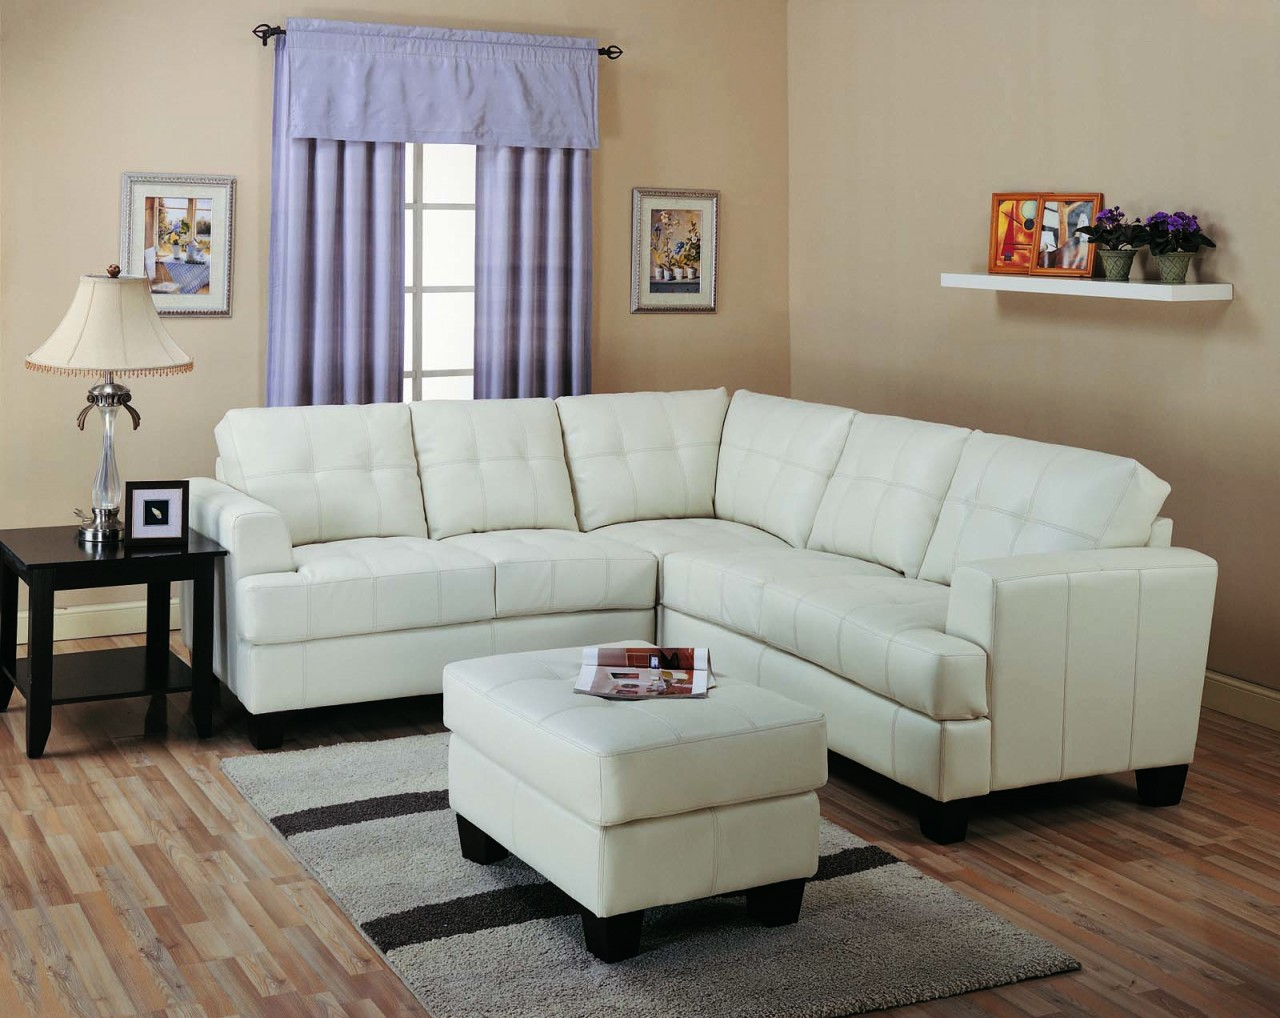 Living Room With Sectional : Small Living Room With Sectional